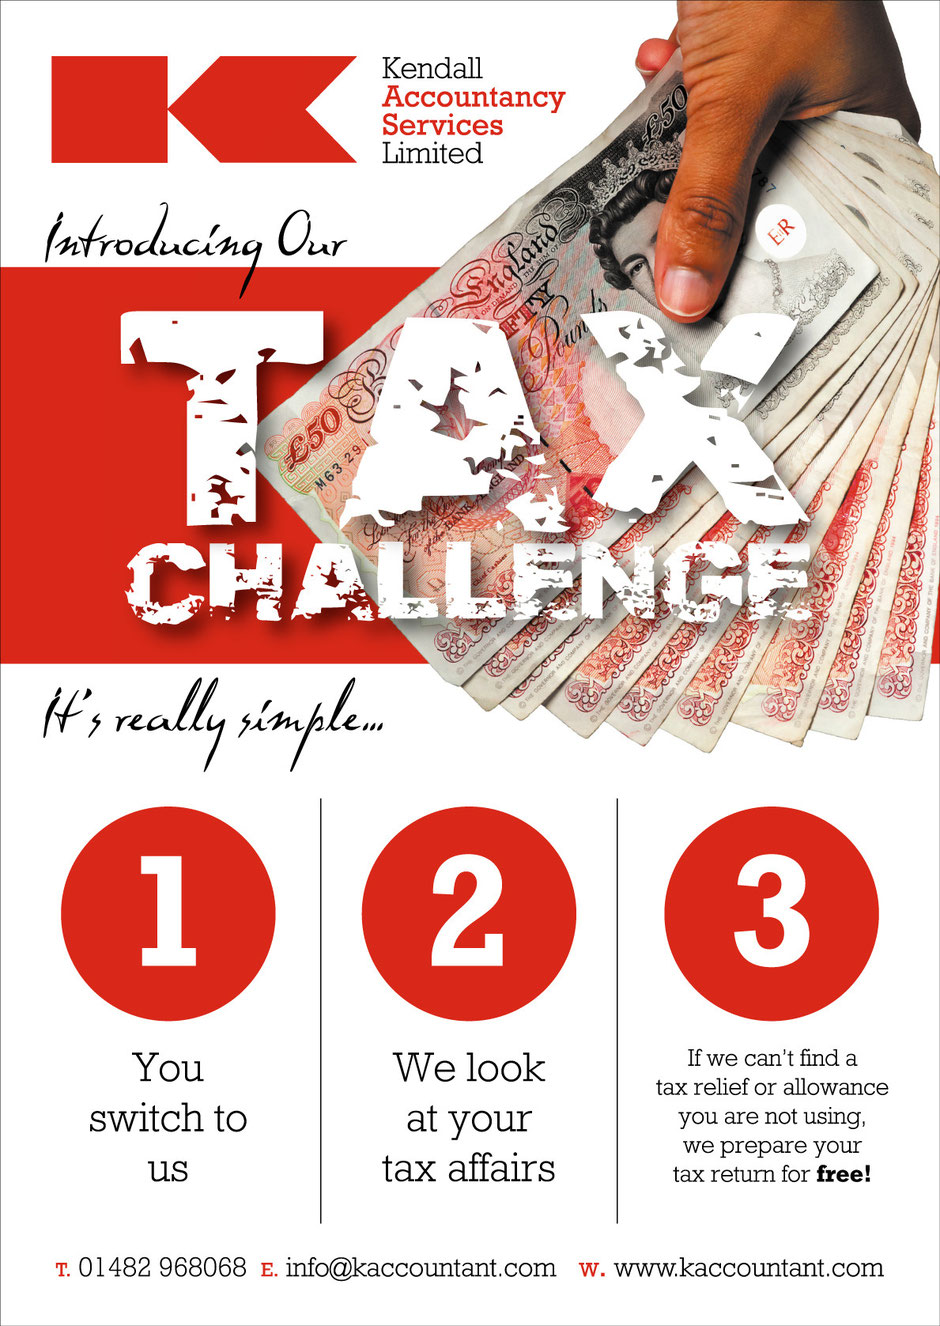 Kendall's Tax Challenge